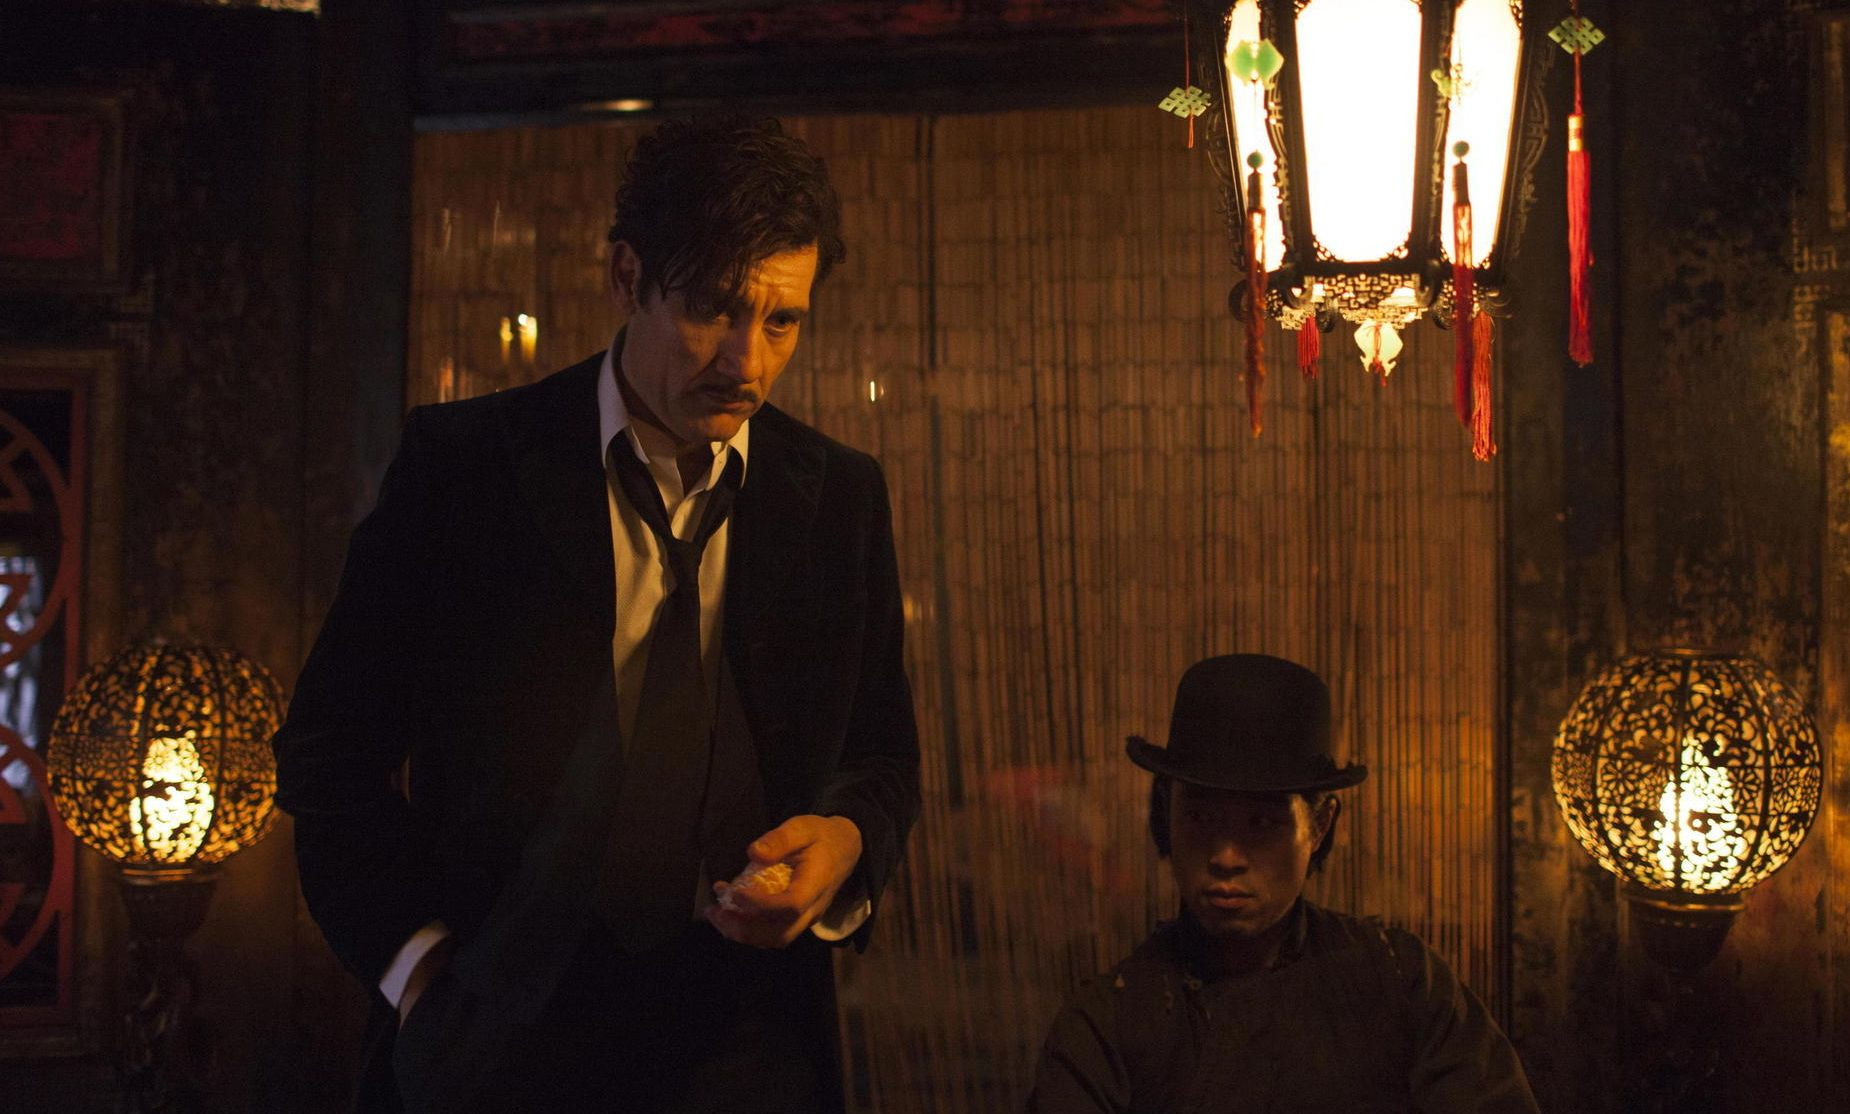 Clive Owen in whorehouse in The Knick